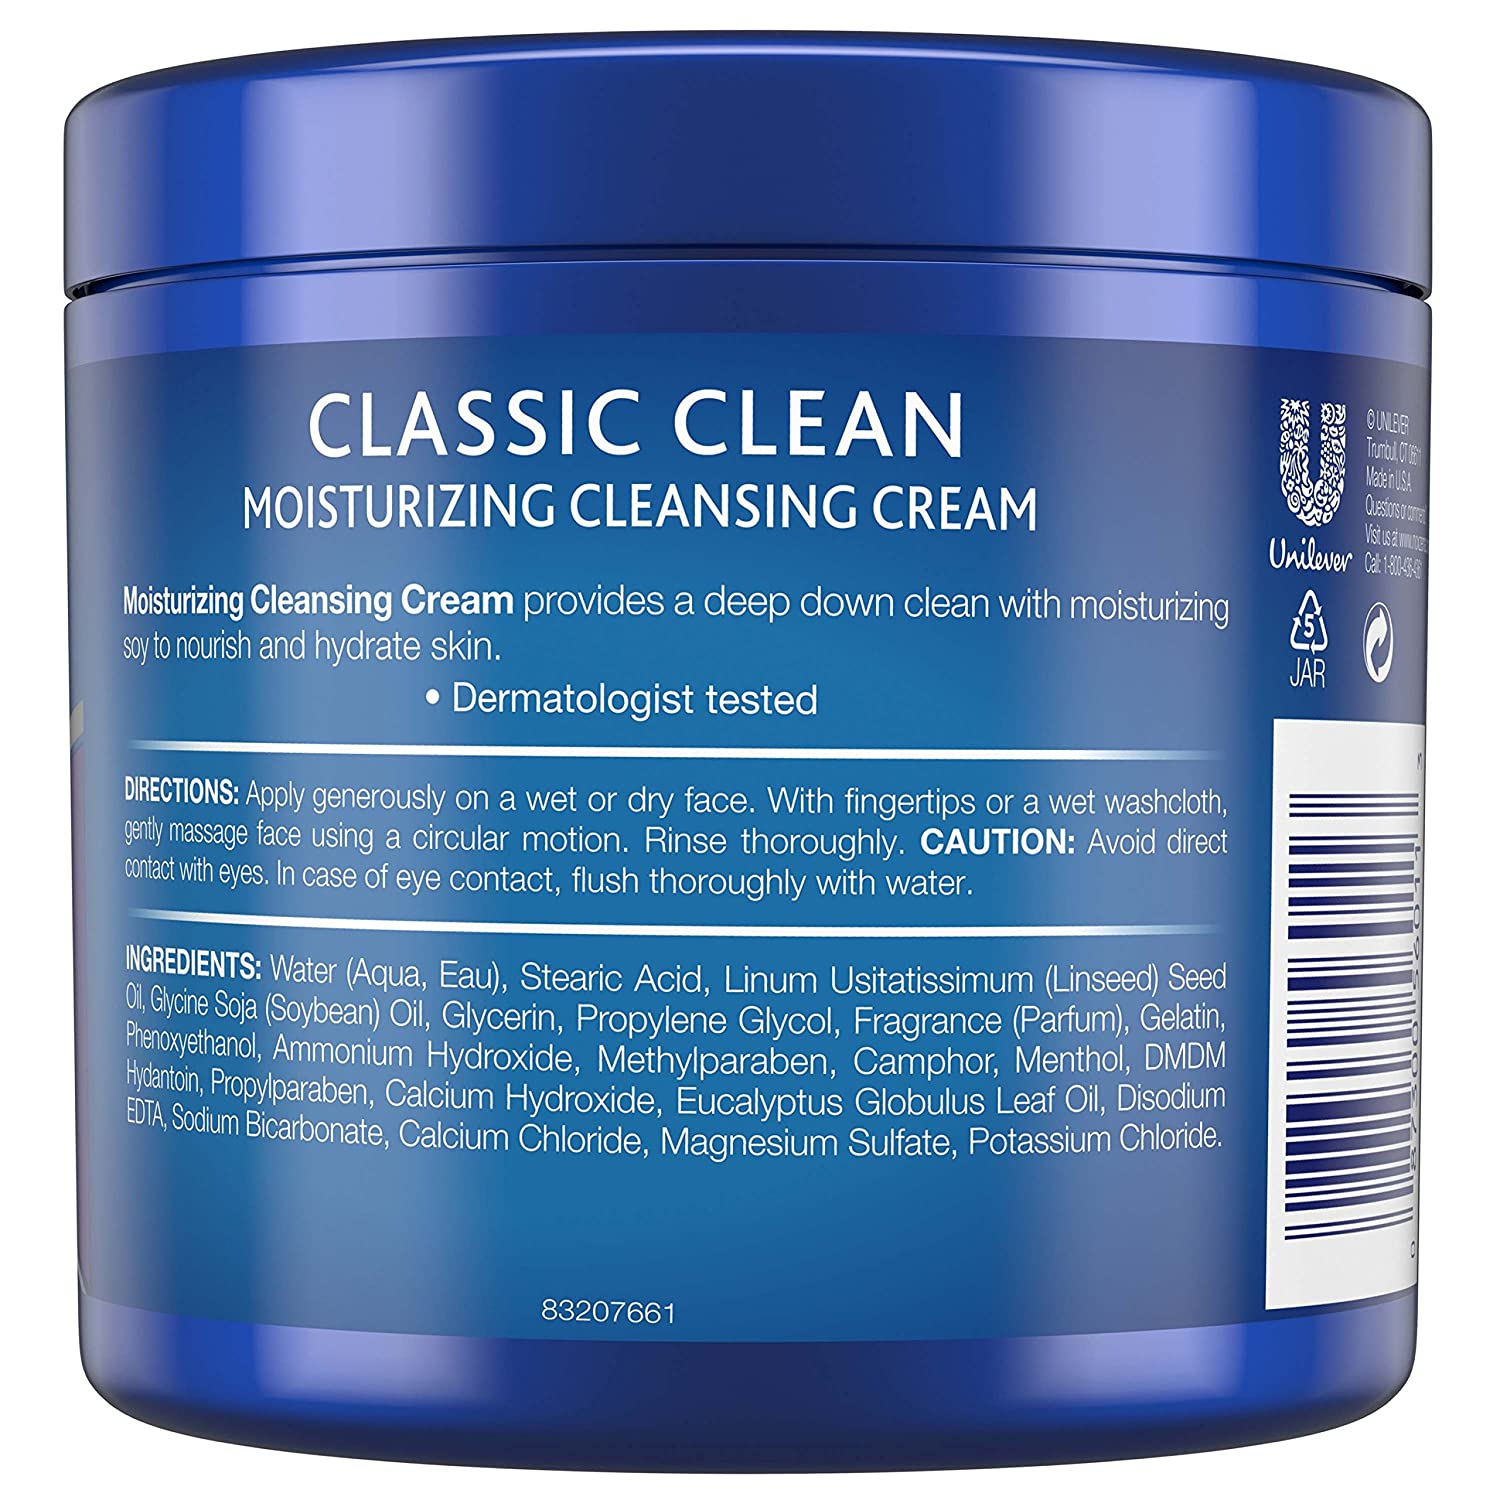 How To Use Noxzema >> Noxzema Facial Cleanser Moisturizing Cleansing 12 Oz Pack Of 6